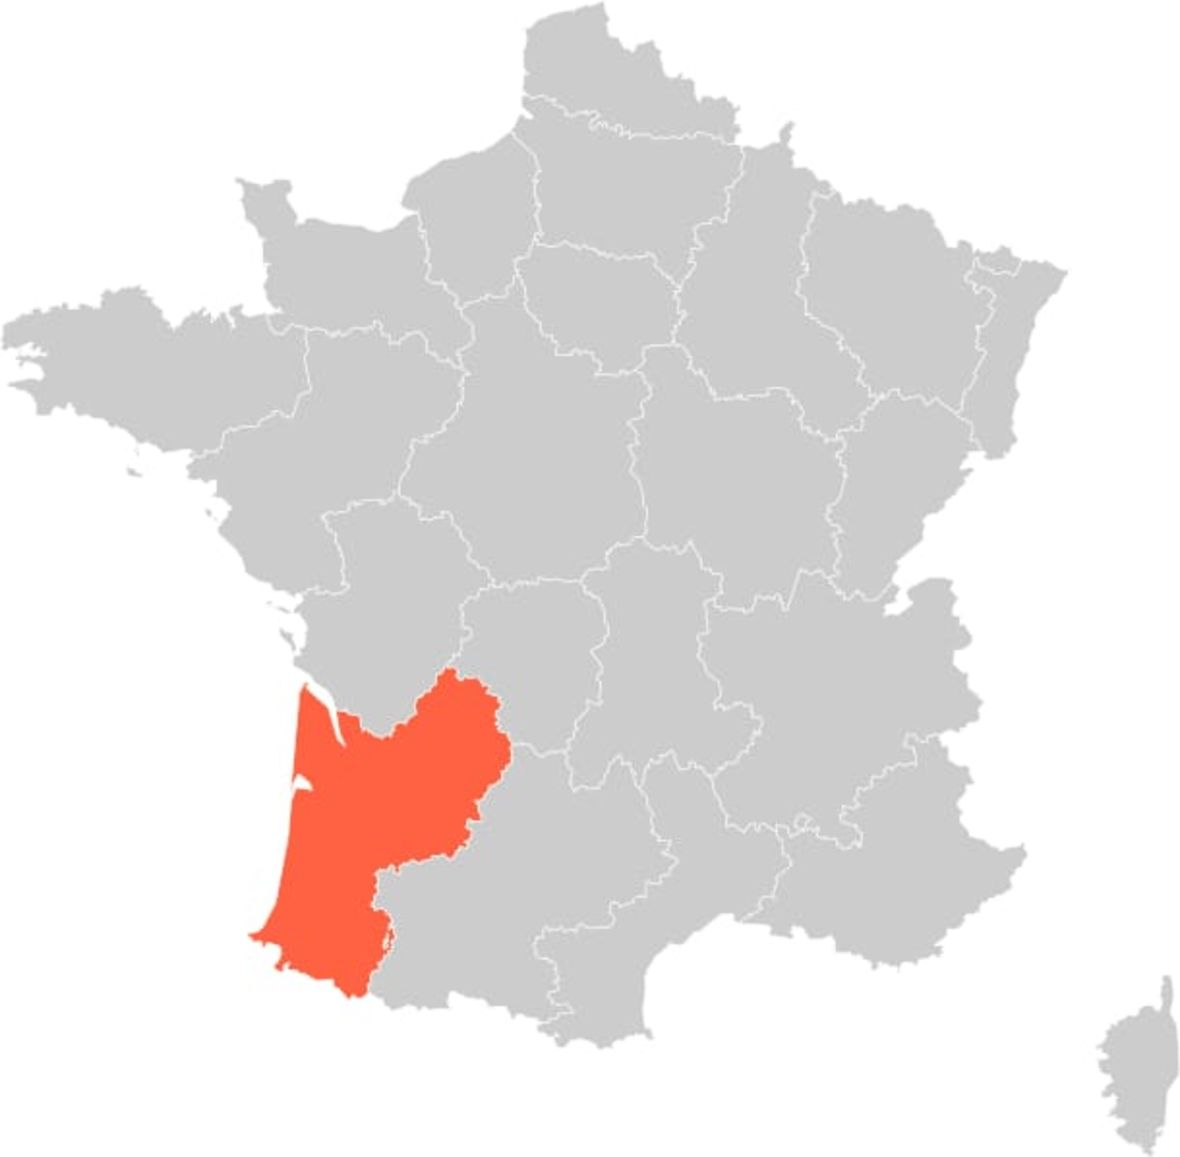 France Bordeaux and Dordogne Region Map